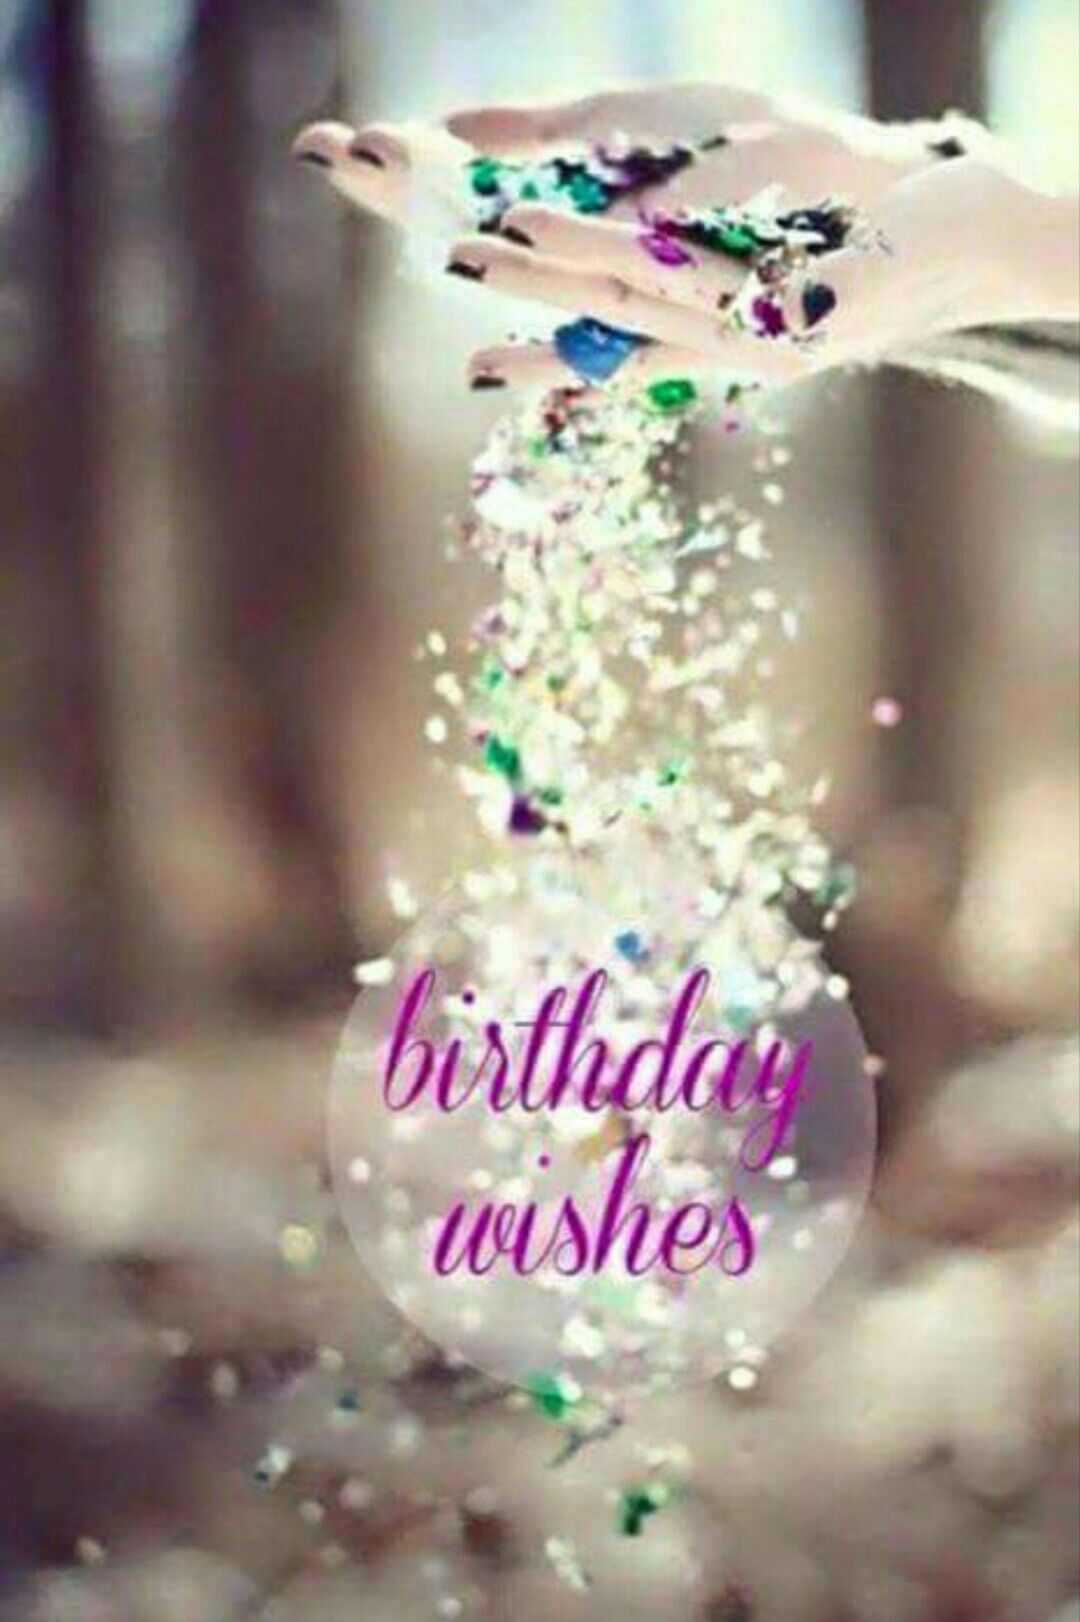 Pin by kathleen.koen.7 on Birthdays (With images